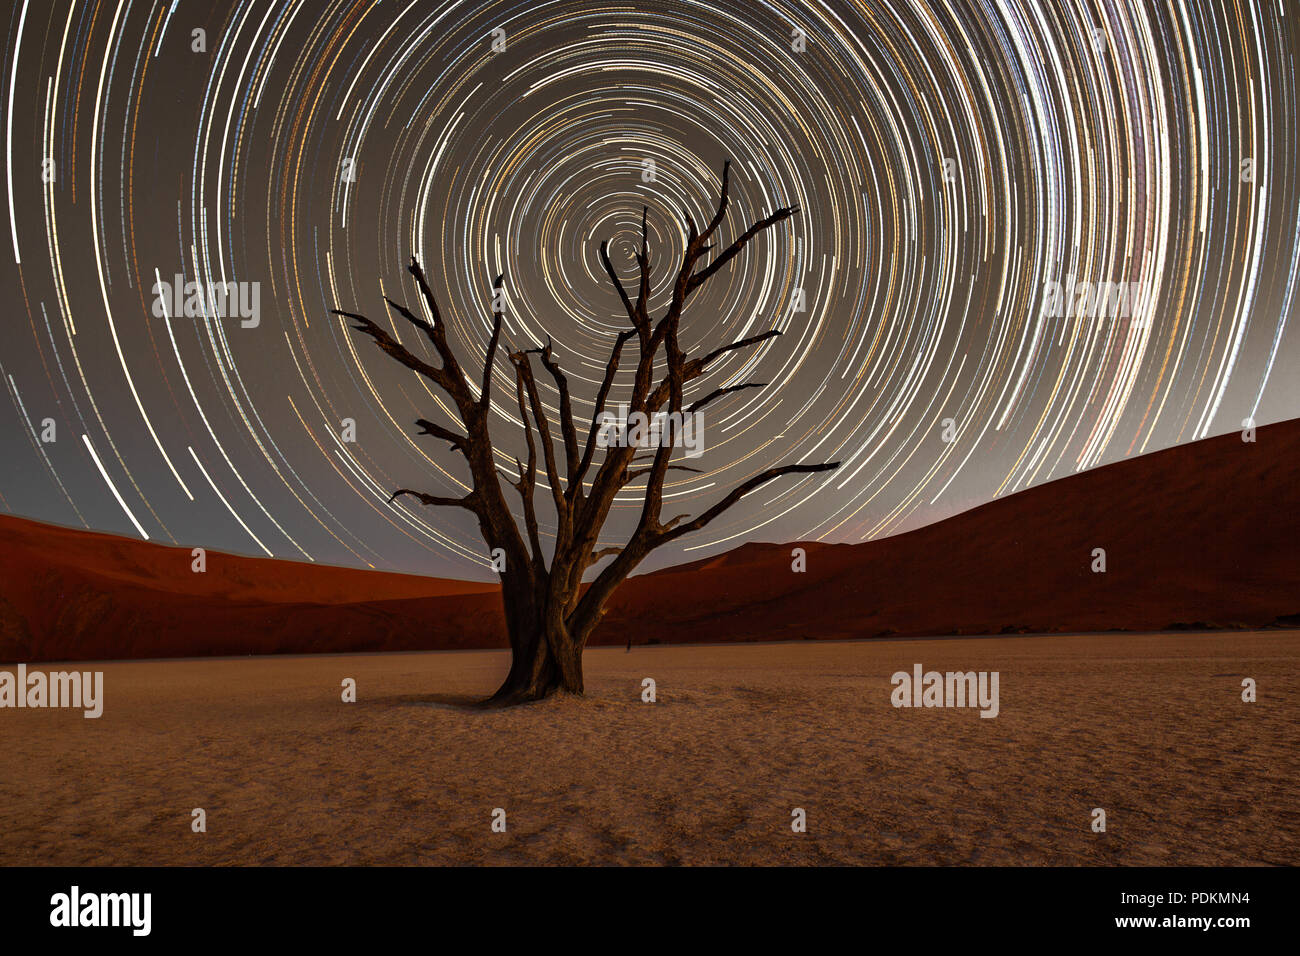 Star trails circle over a camelthorn tree in Deadvlie, Namibia - Stock Image